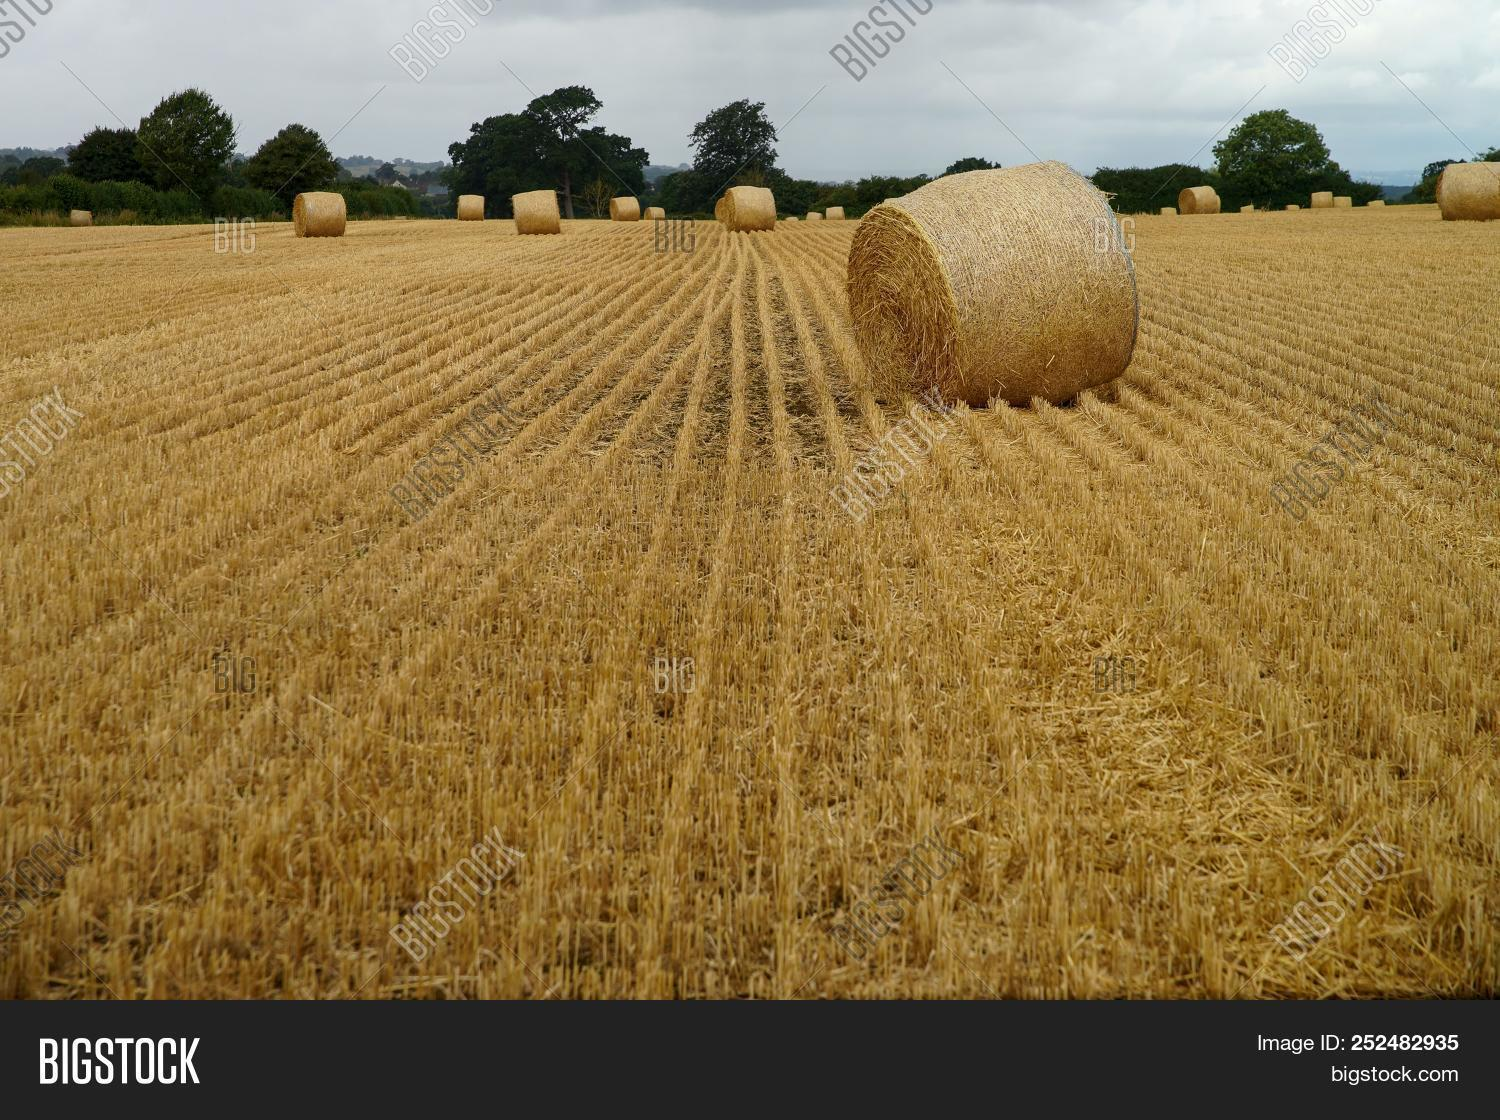 Stubble Field Straw Image Photo Free Trial Bigstock